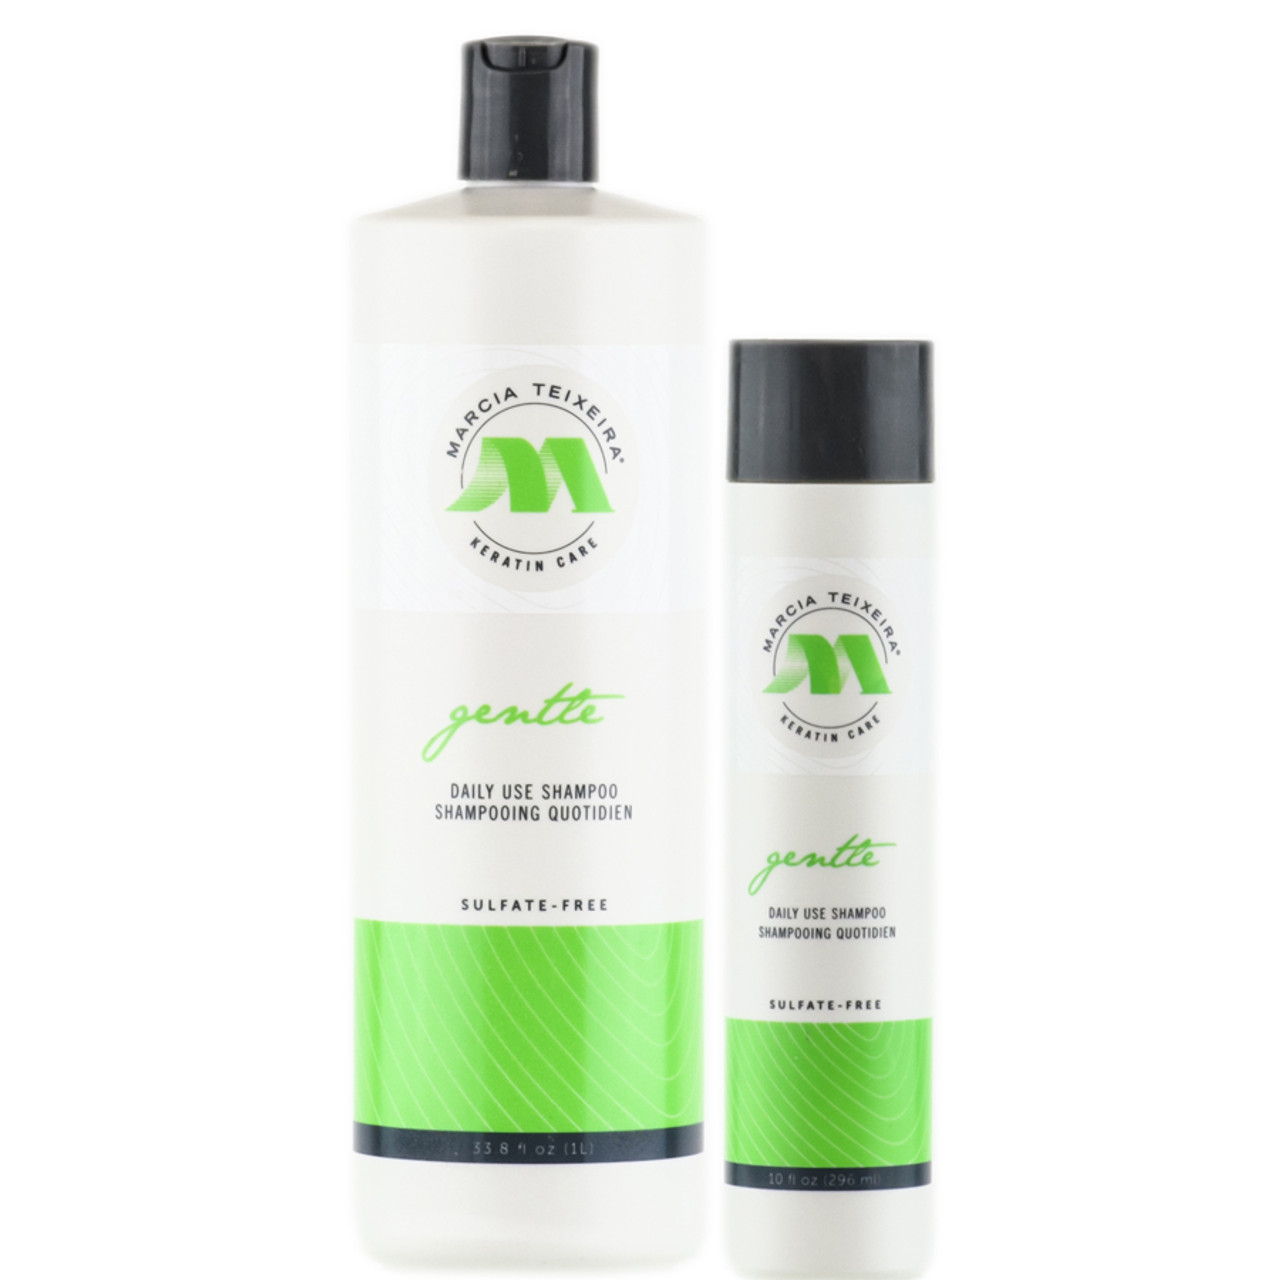 Gentle shampoo for everyday use